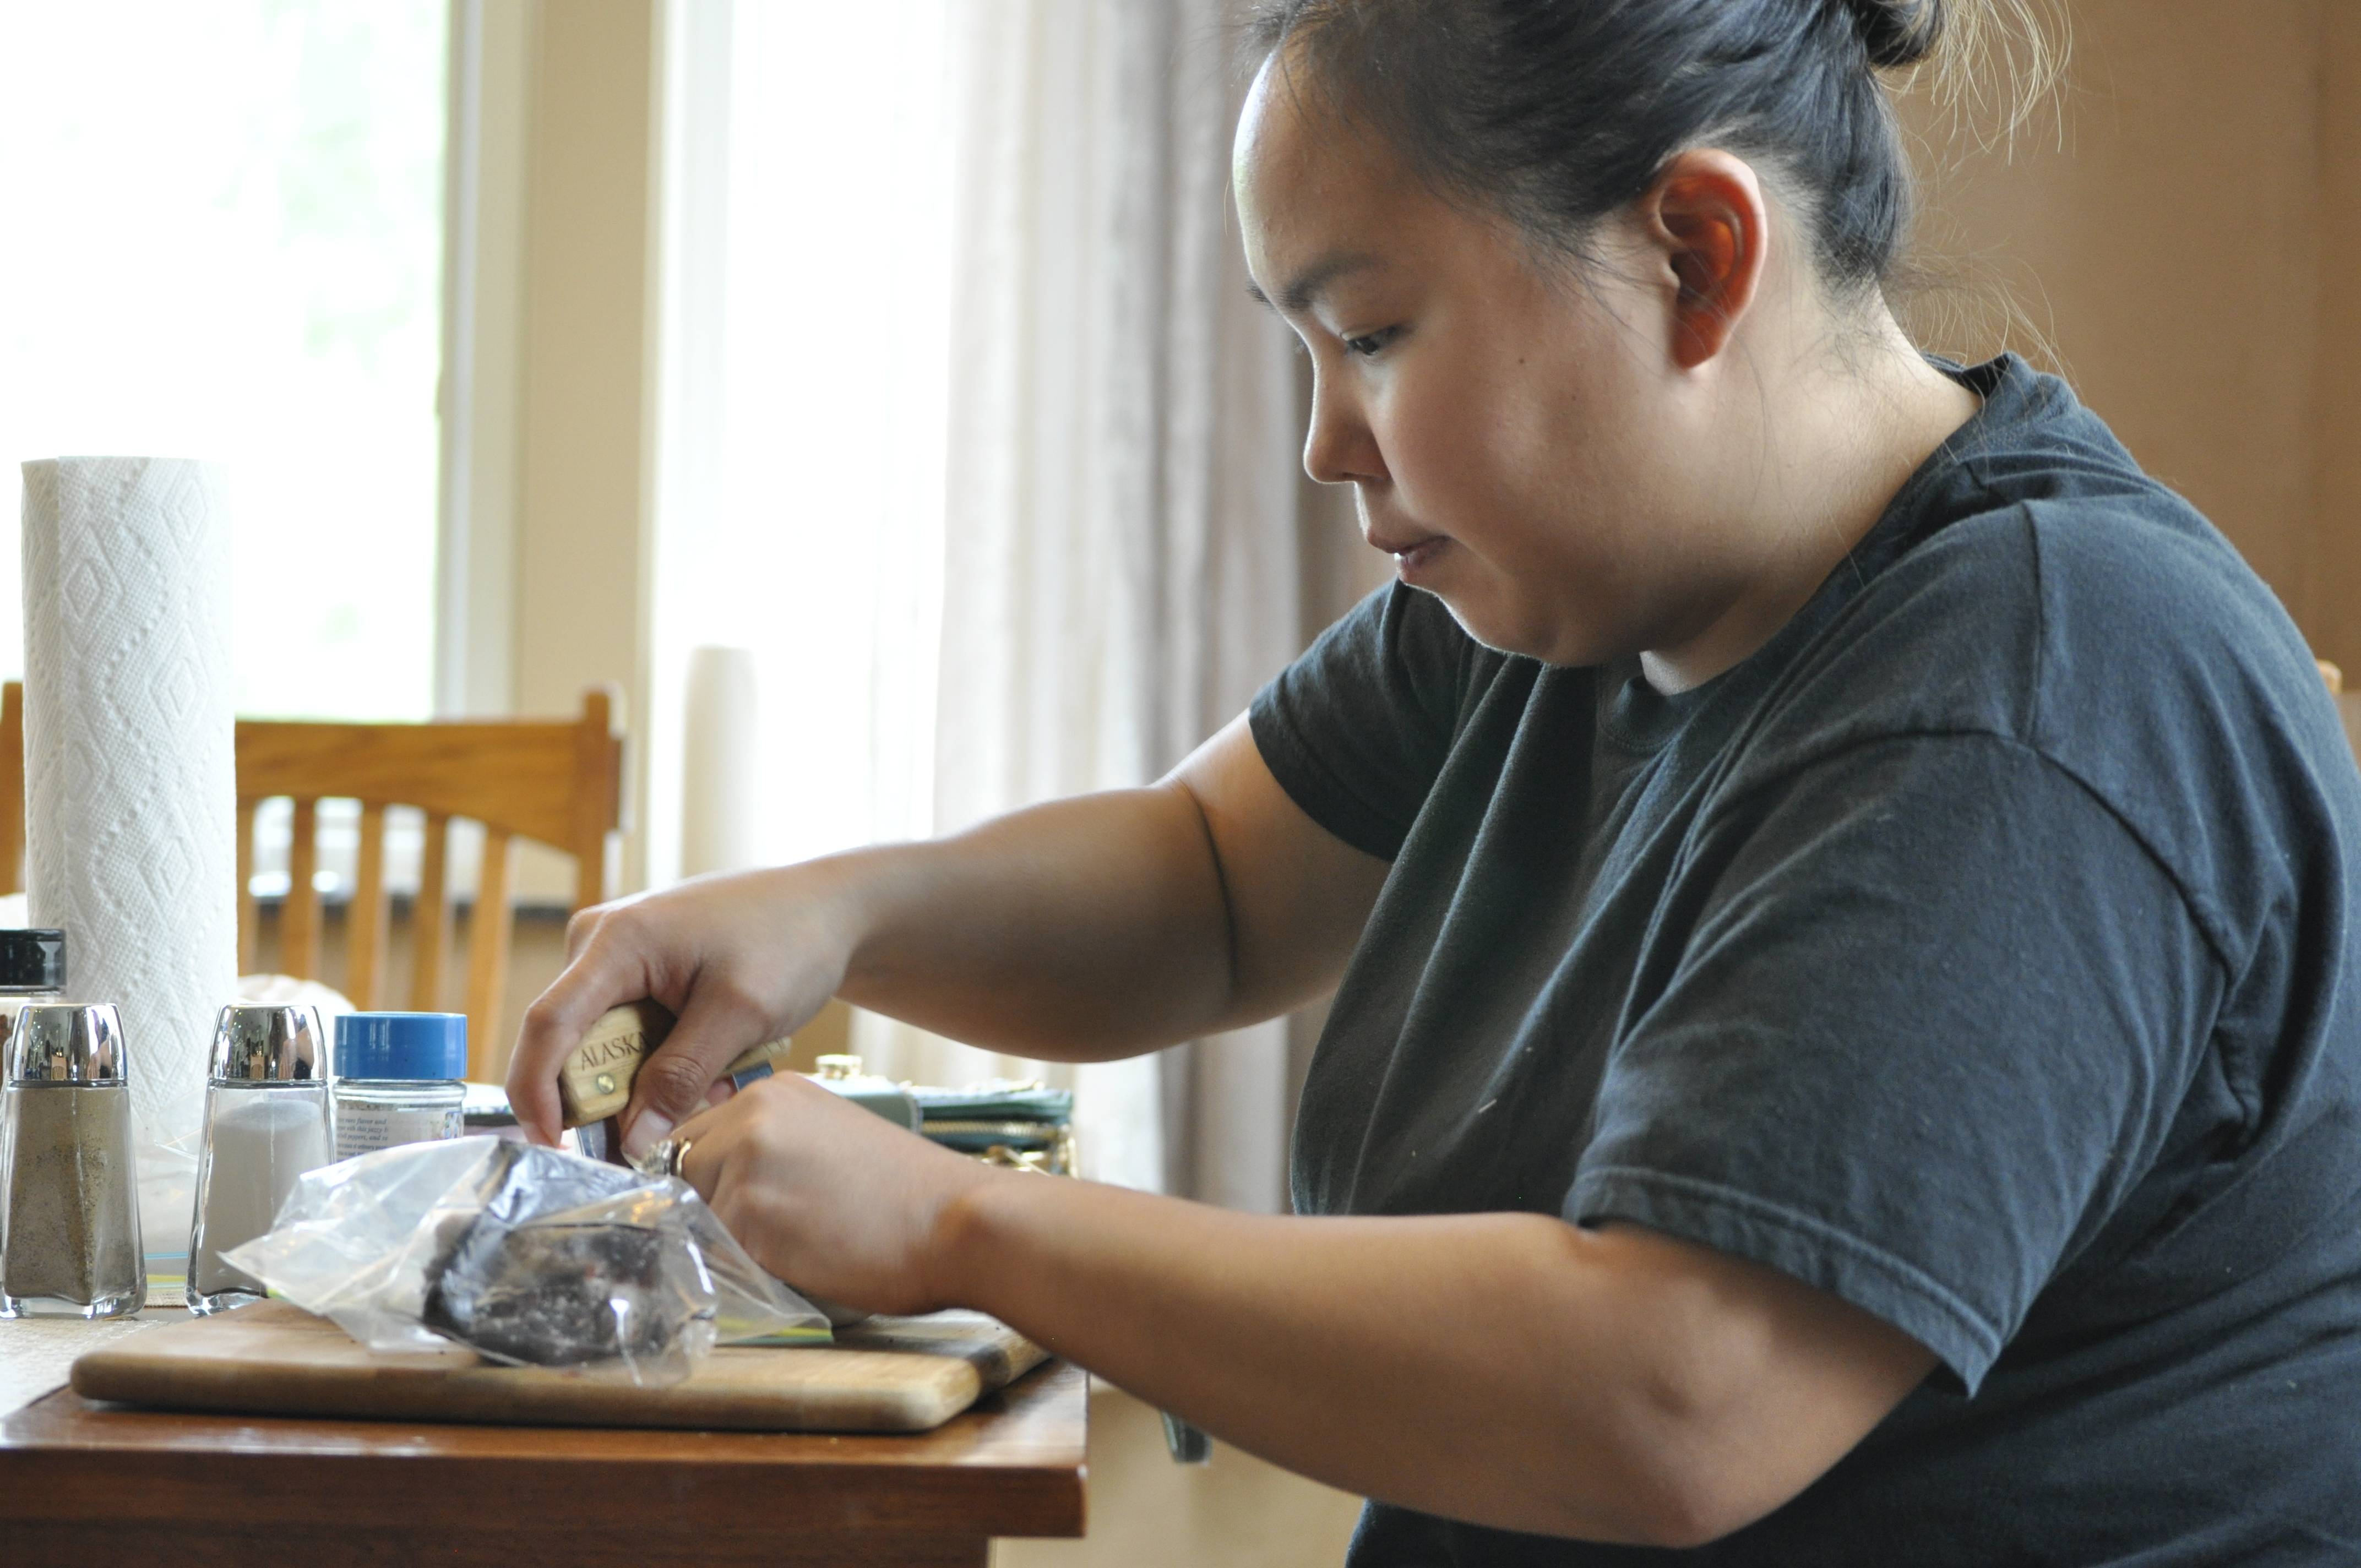 Alesha Tangman uses an ulu to cut up pieces of bowhead whale meat at her aunt and uncle's kitchen table in Wasilla. She uses Kunniak's spice mixtures on everything from salads to Maktak. (Photo by Erin McKinstry/Alaska Public Media)